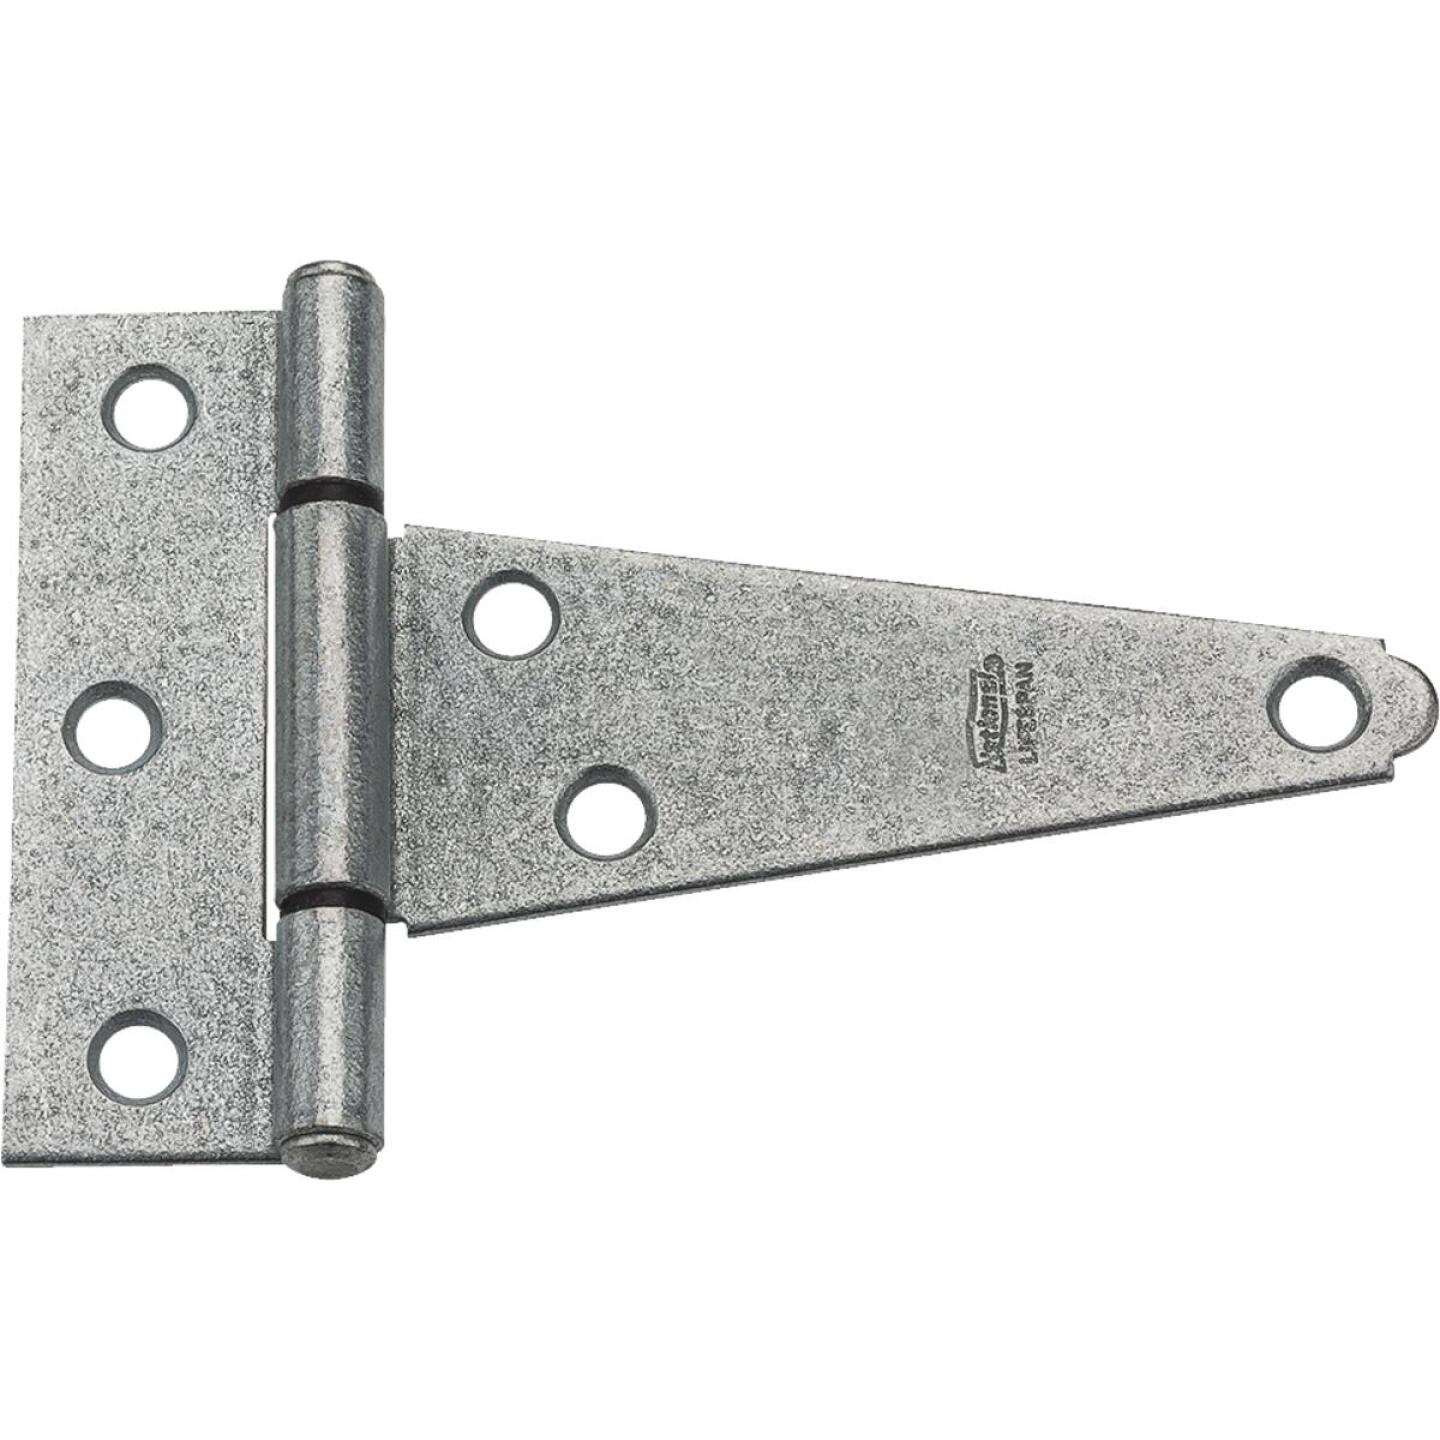 National 4 In. Galvanized Steel Heavy-Duty Tee Hinge Image 1